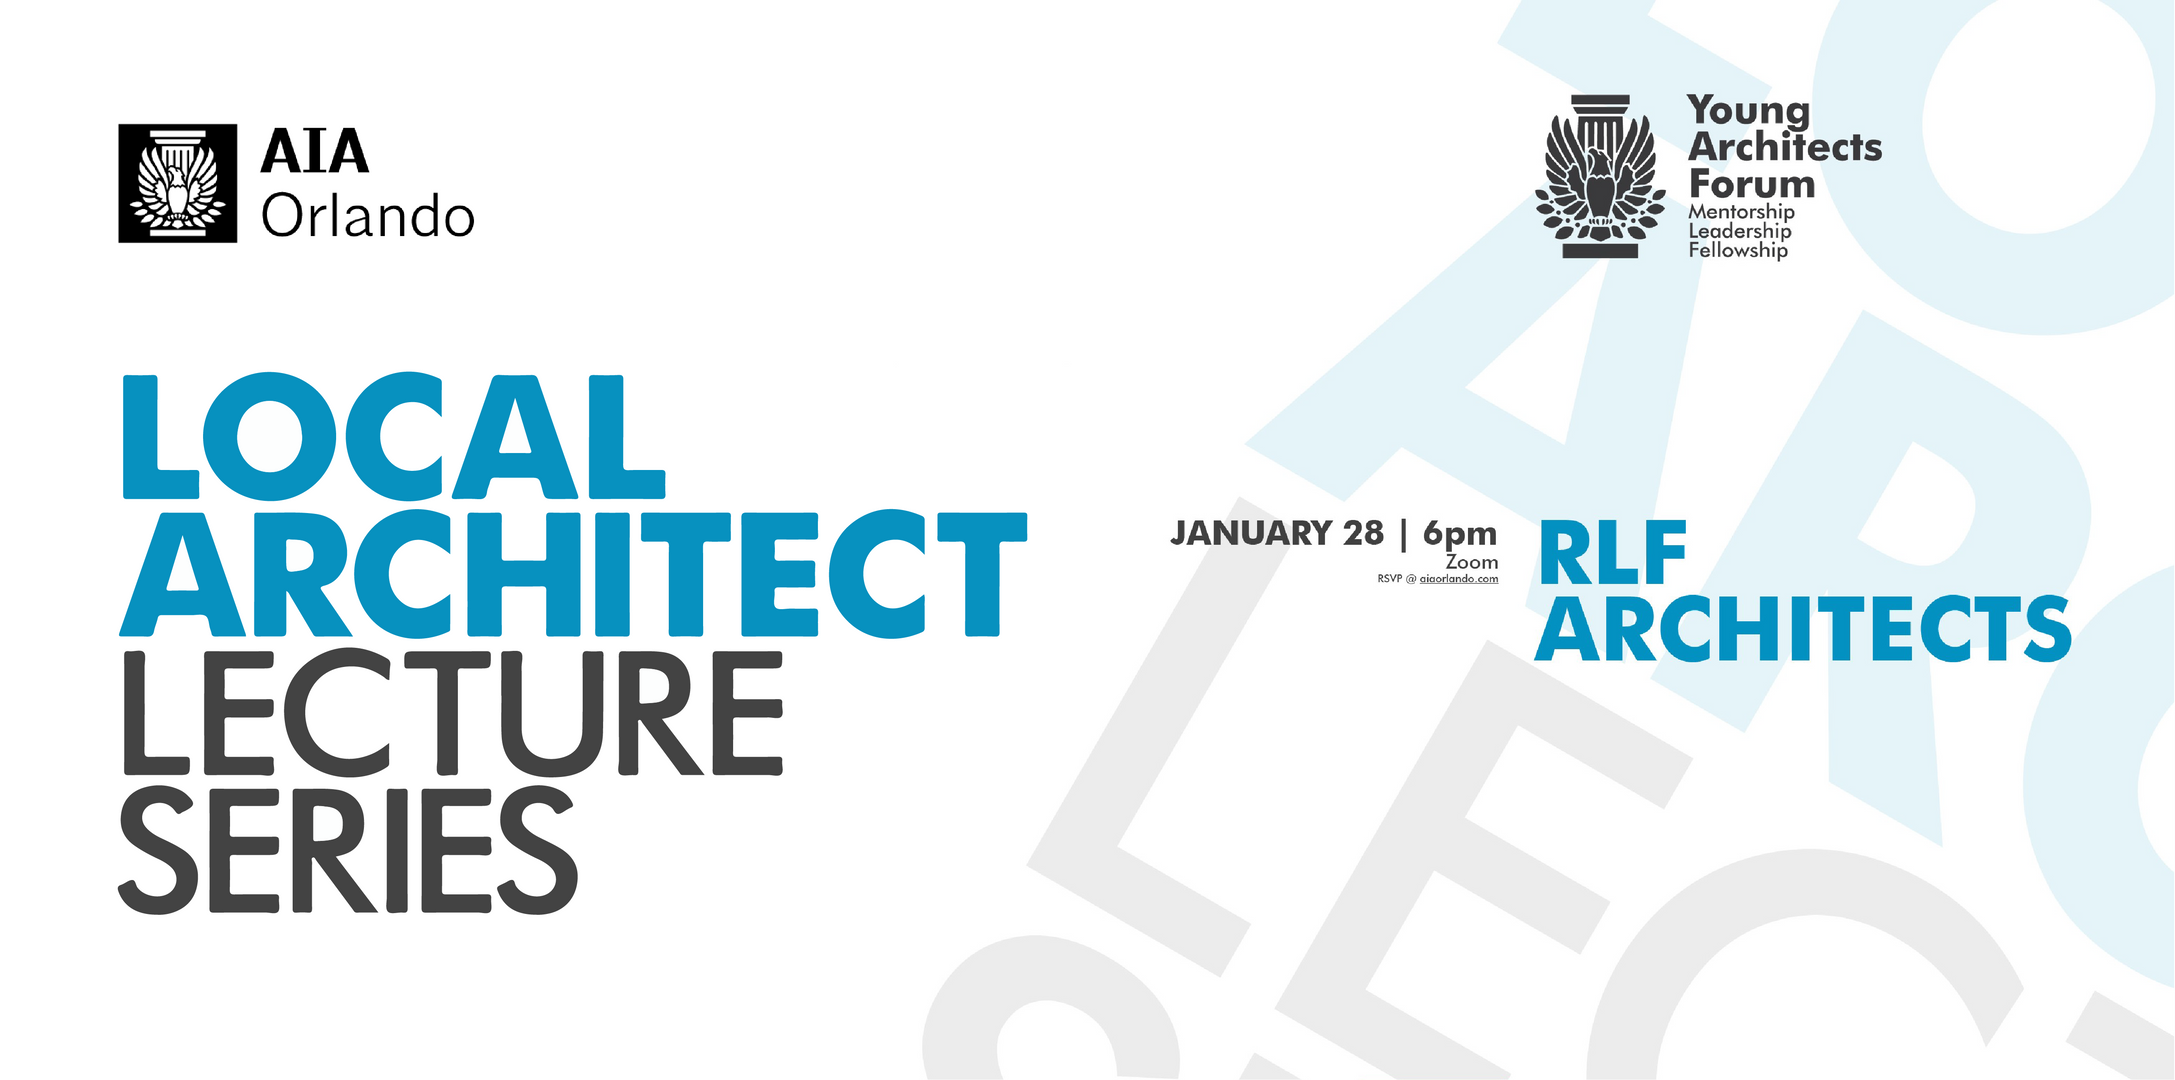 YAF RLF Architect lecture 1.28.21 banner